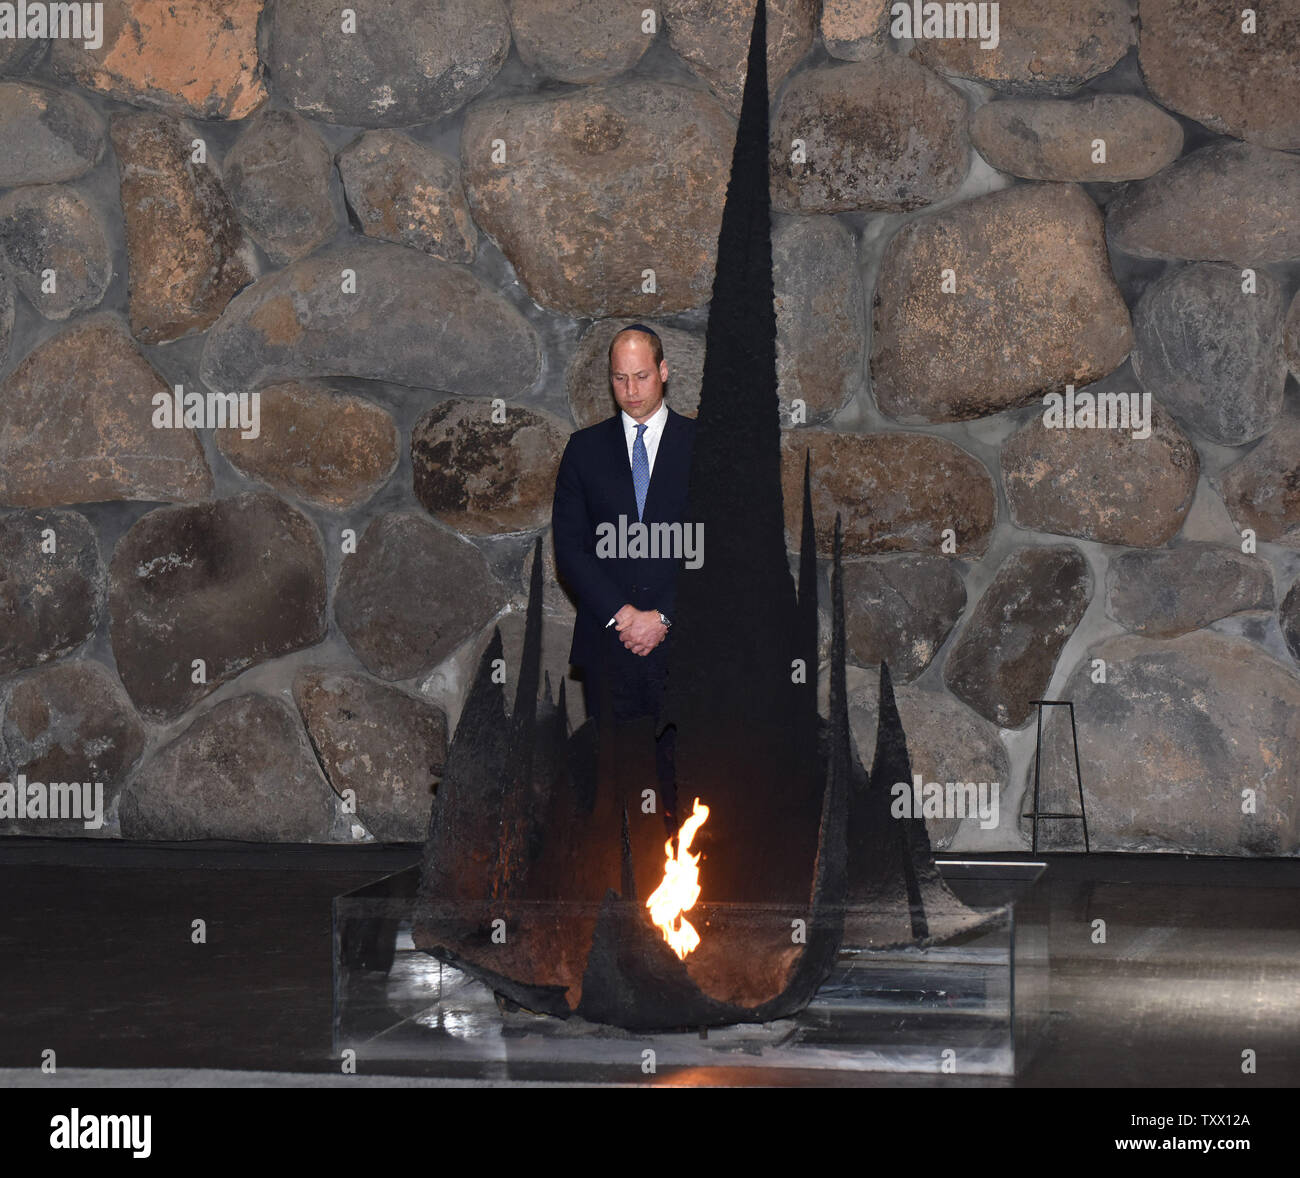 Prince William, the Duke of Cambridge, paues after rekindling the eternal flame during a memorial ceremony in the Hall of Remembrance at Yad Vashem, the World Holocaust Remembrance Center, in Jerusalem, Israel, June 26, 2018.  Photo by Debbie Hill/UPI - Stock Image